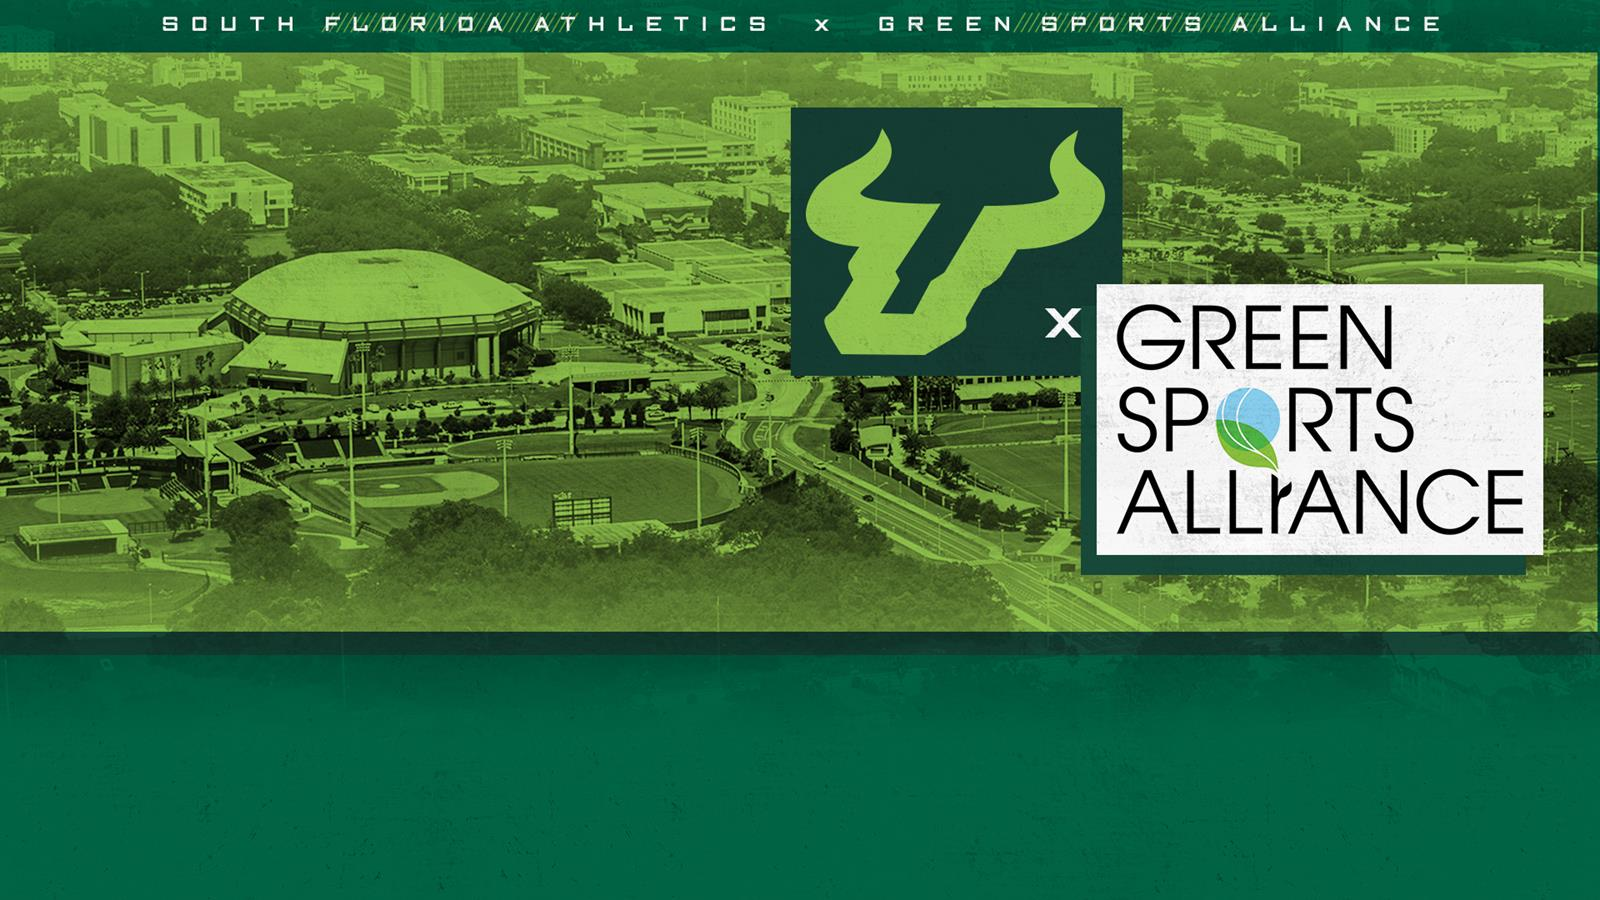 General Usf Athletics